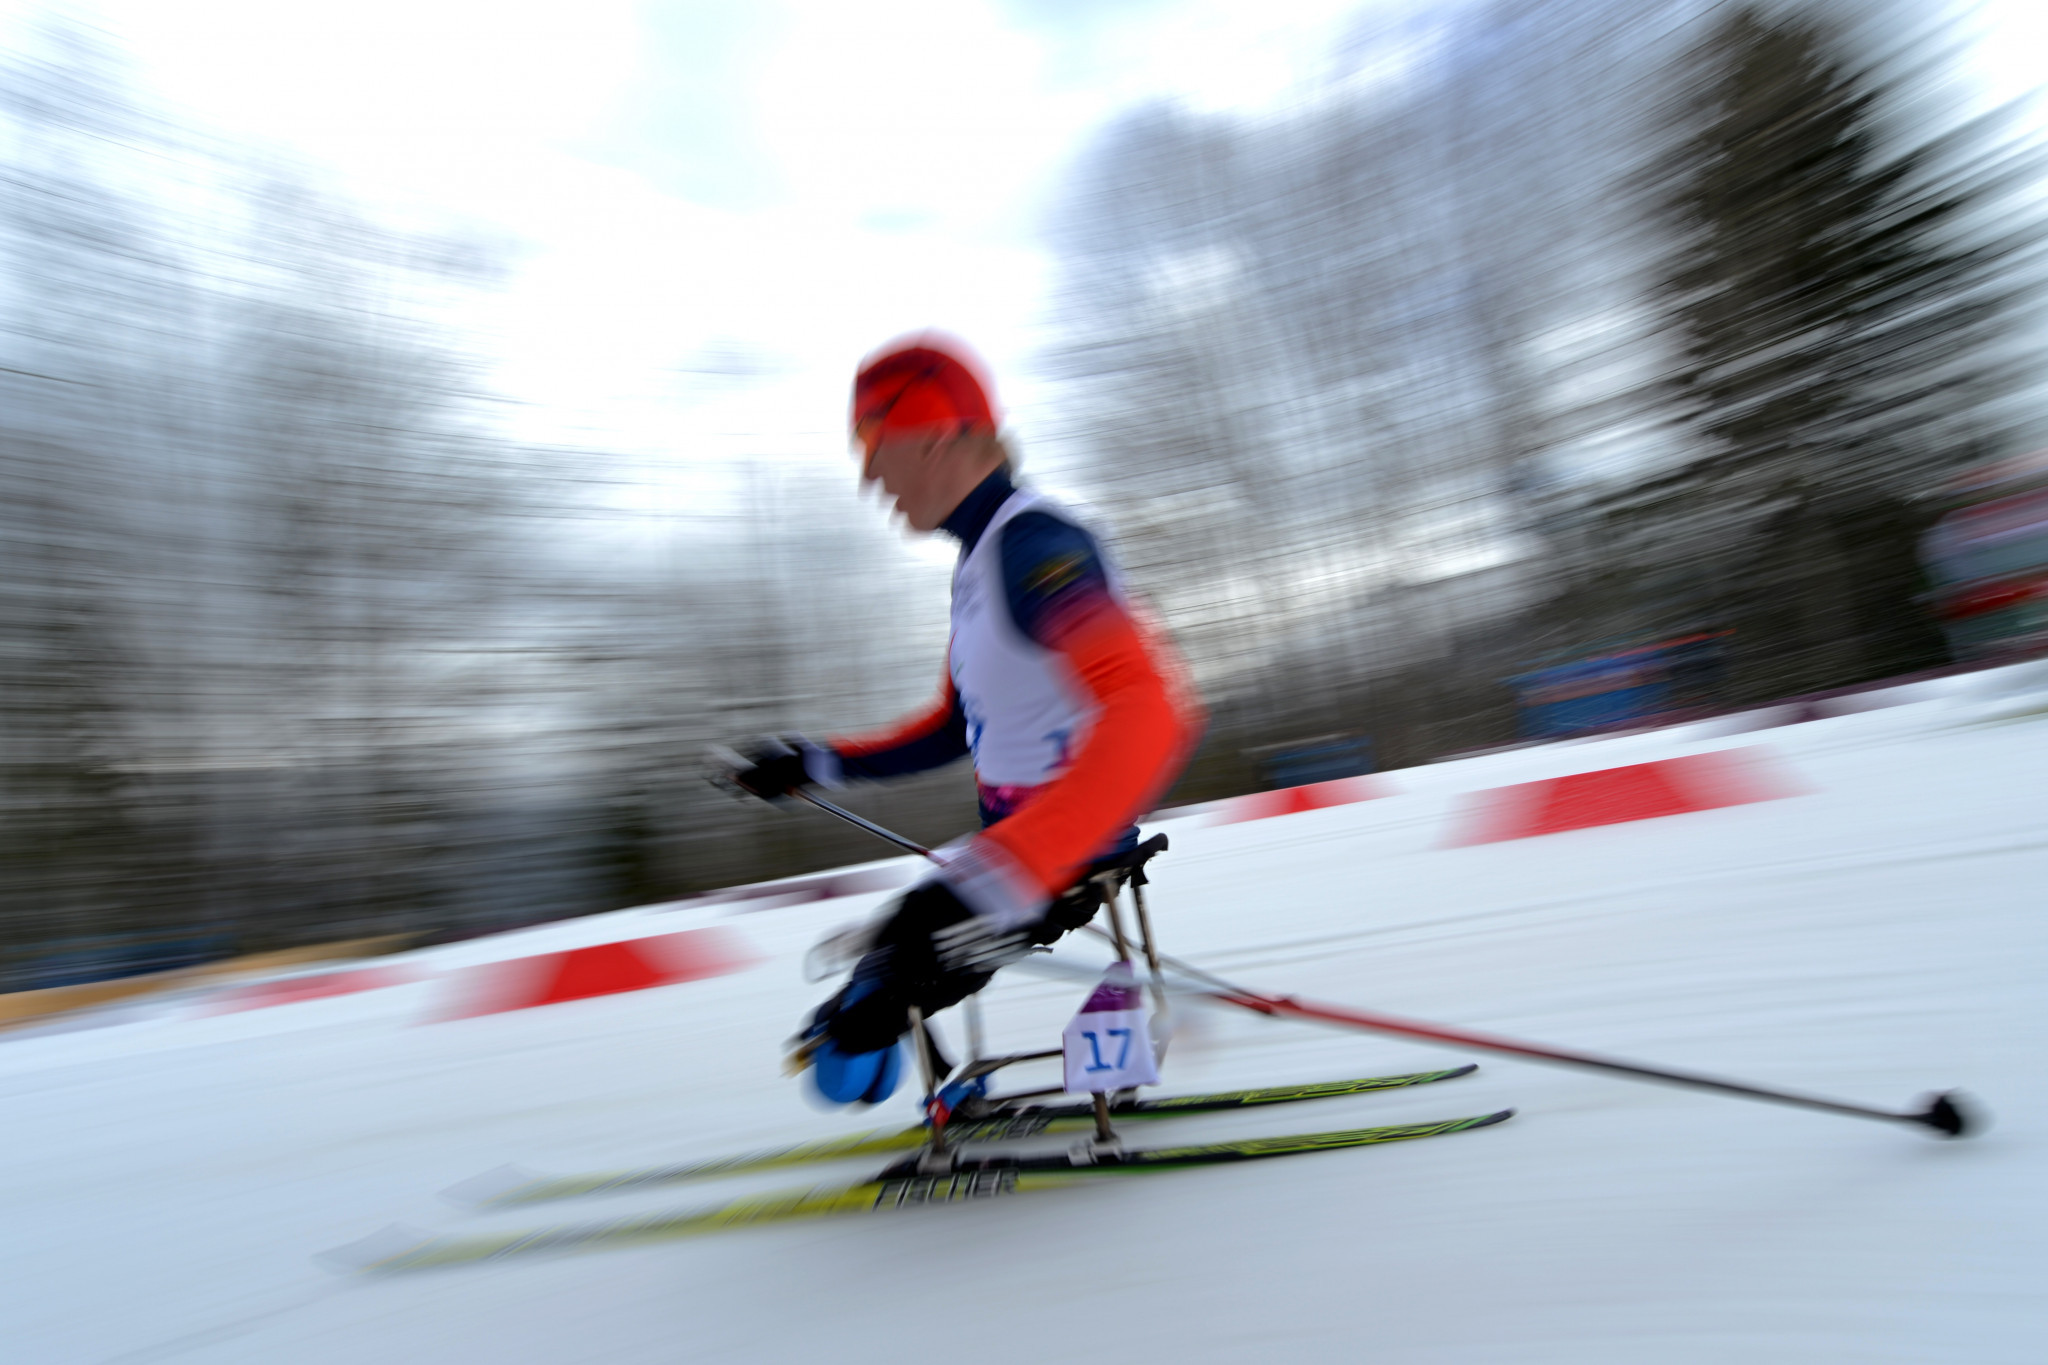 Russians continue World Para Nordic Skiing World Cup dominance as competition heads to Oberried